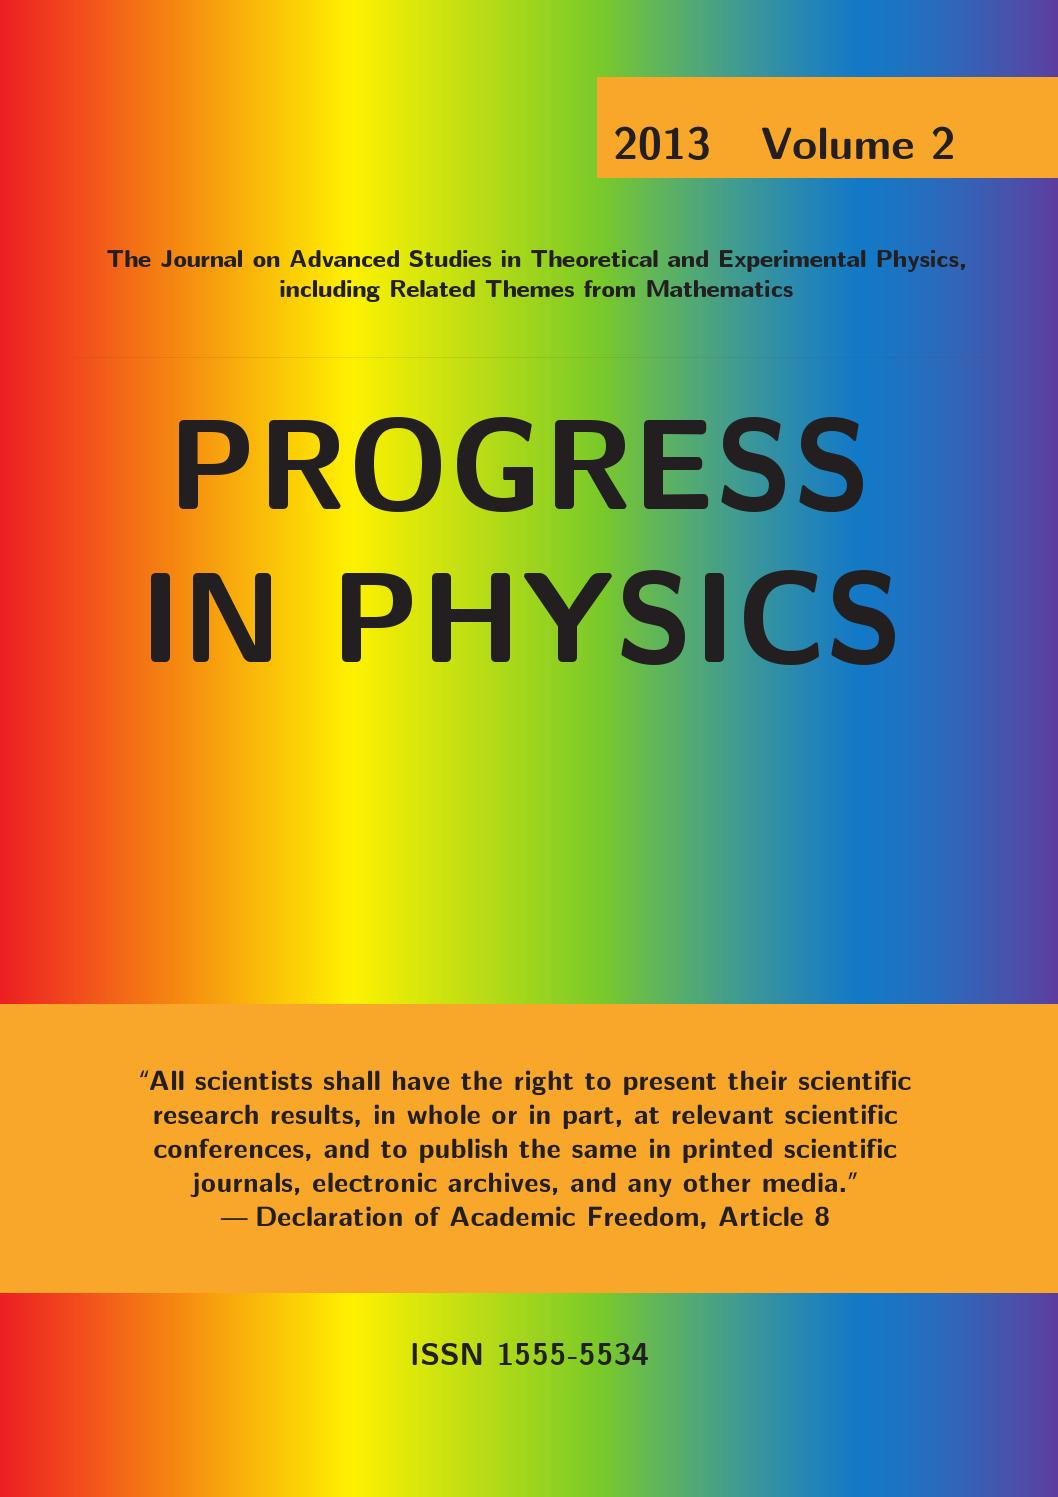 Archive: Physics Two by Ally